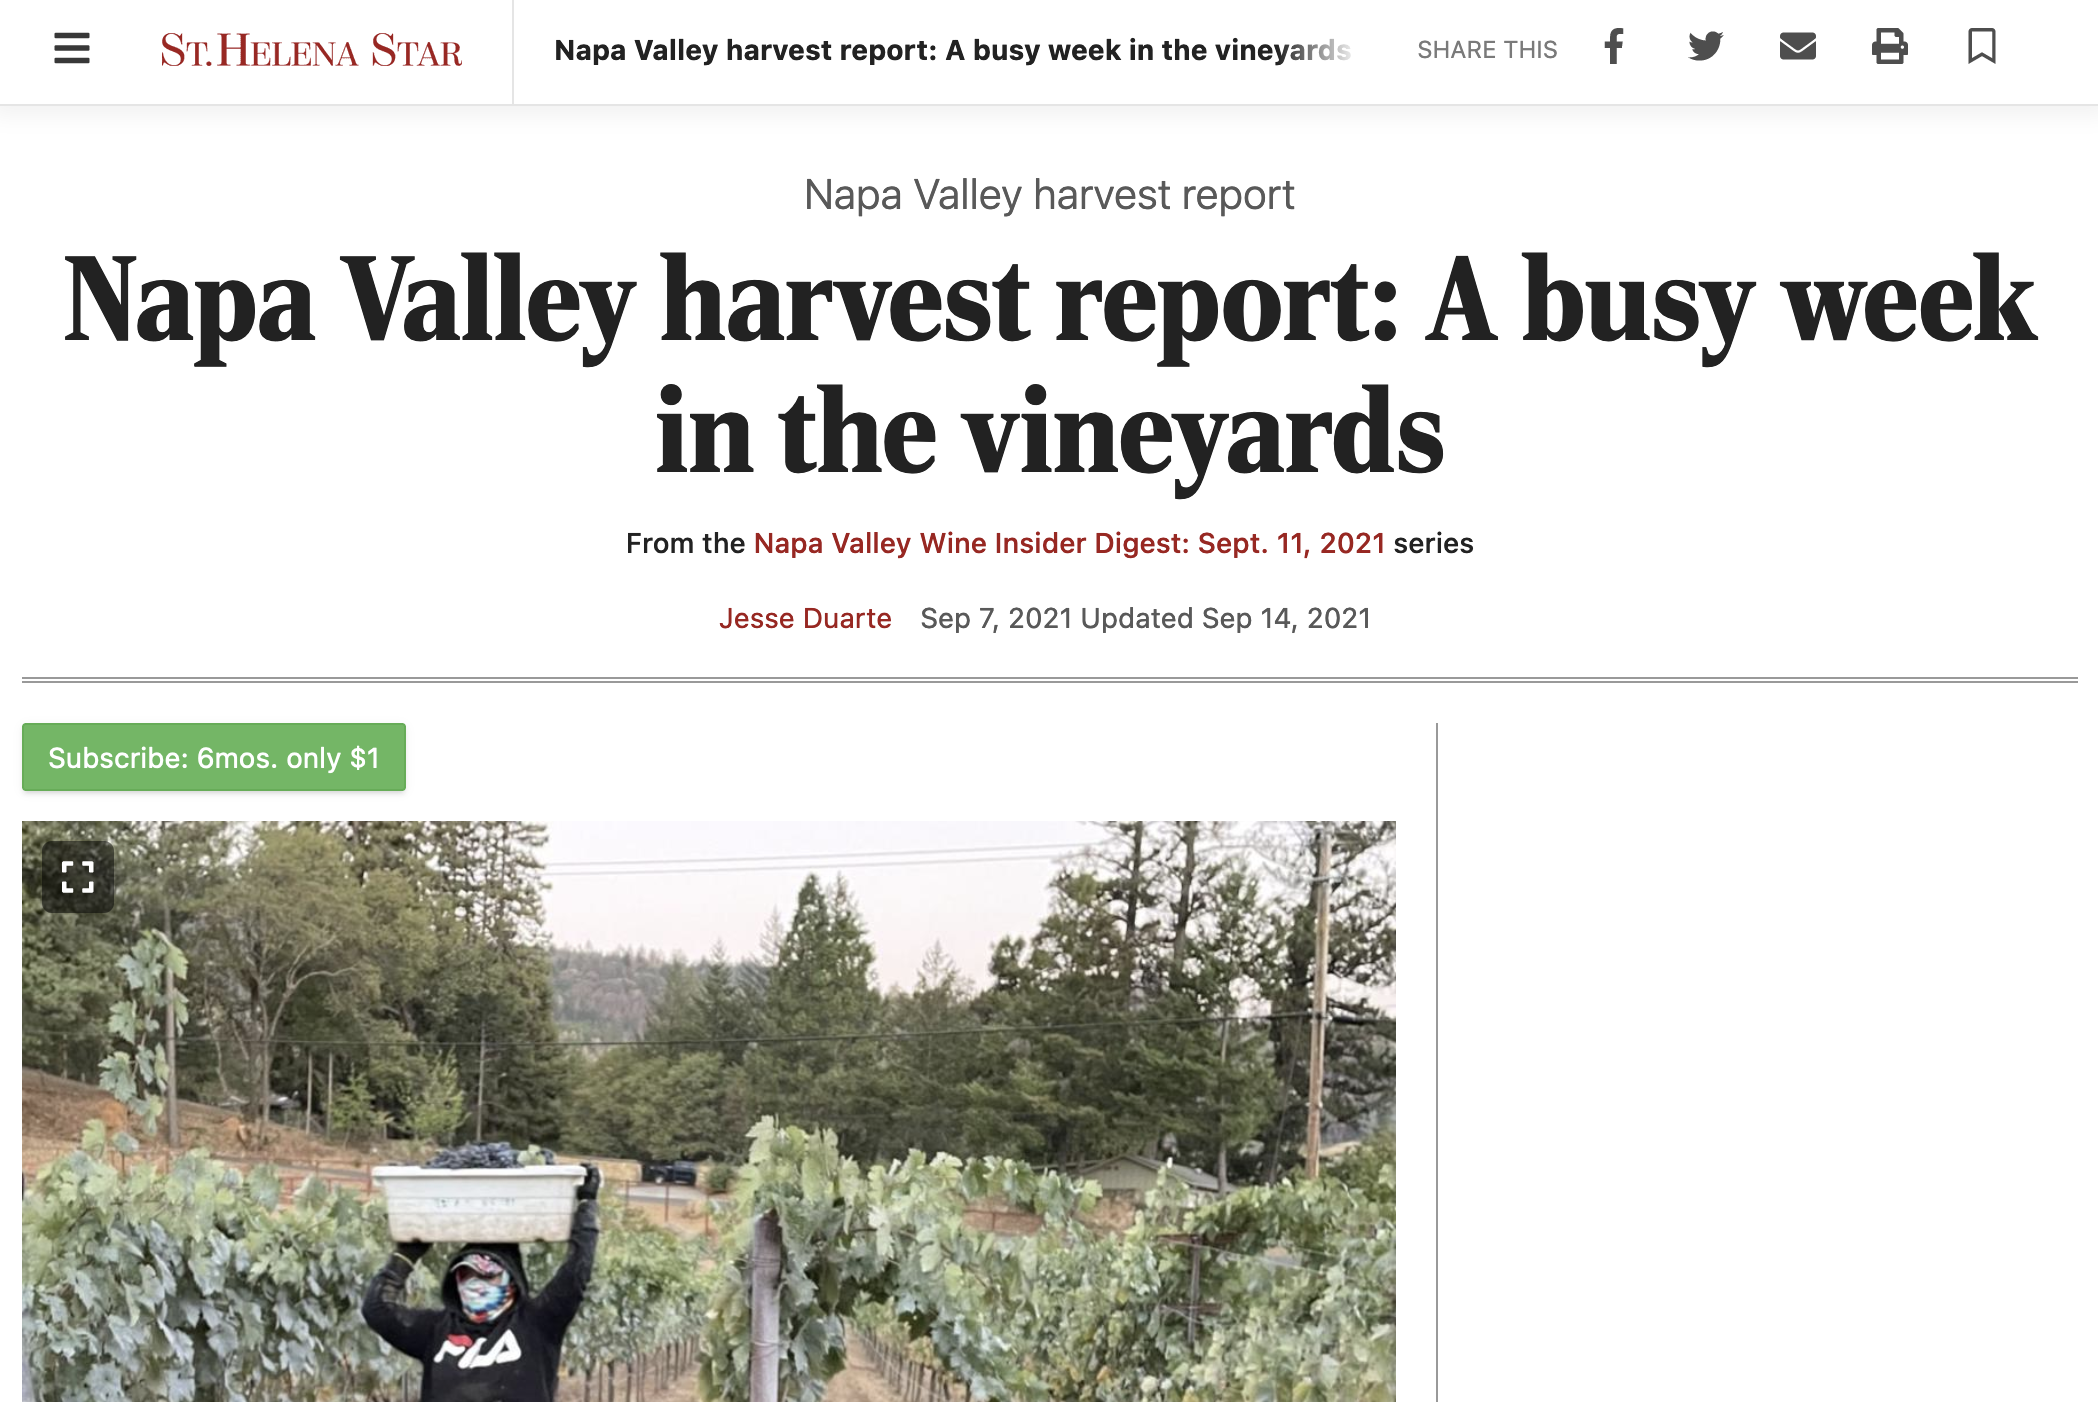 St Helena Star: A busy week in the vineyards